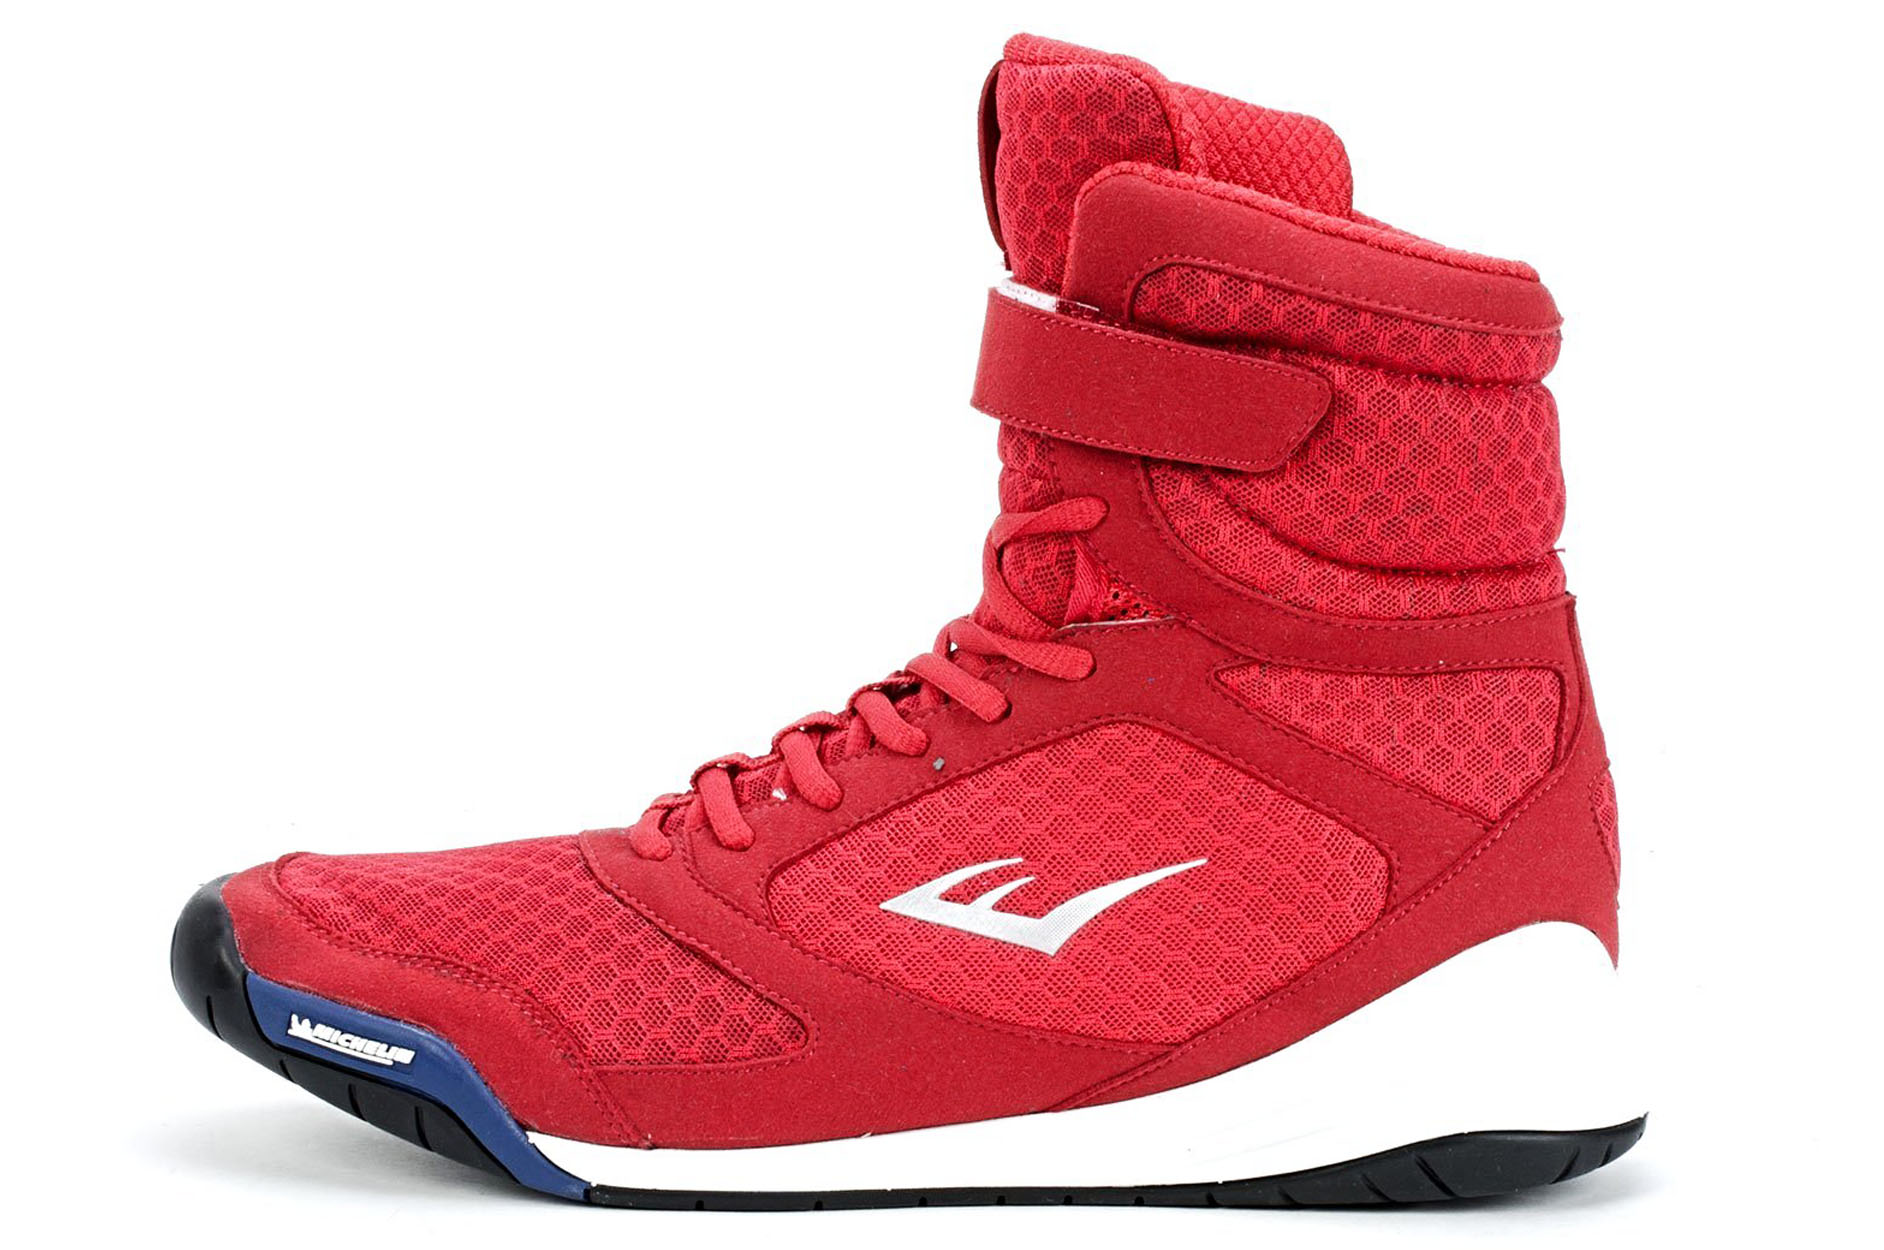 METAL BOXE Chaussures Boxe Anglaise Viper IV